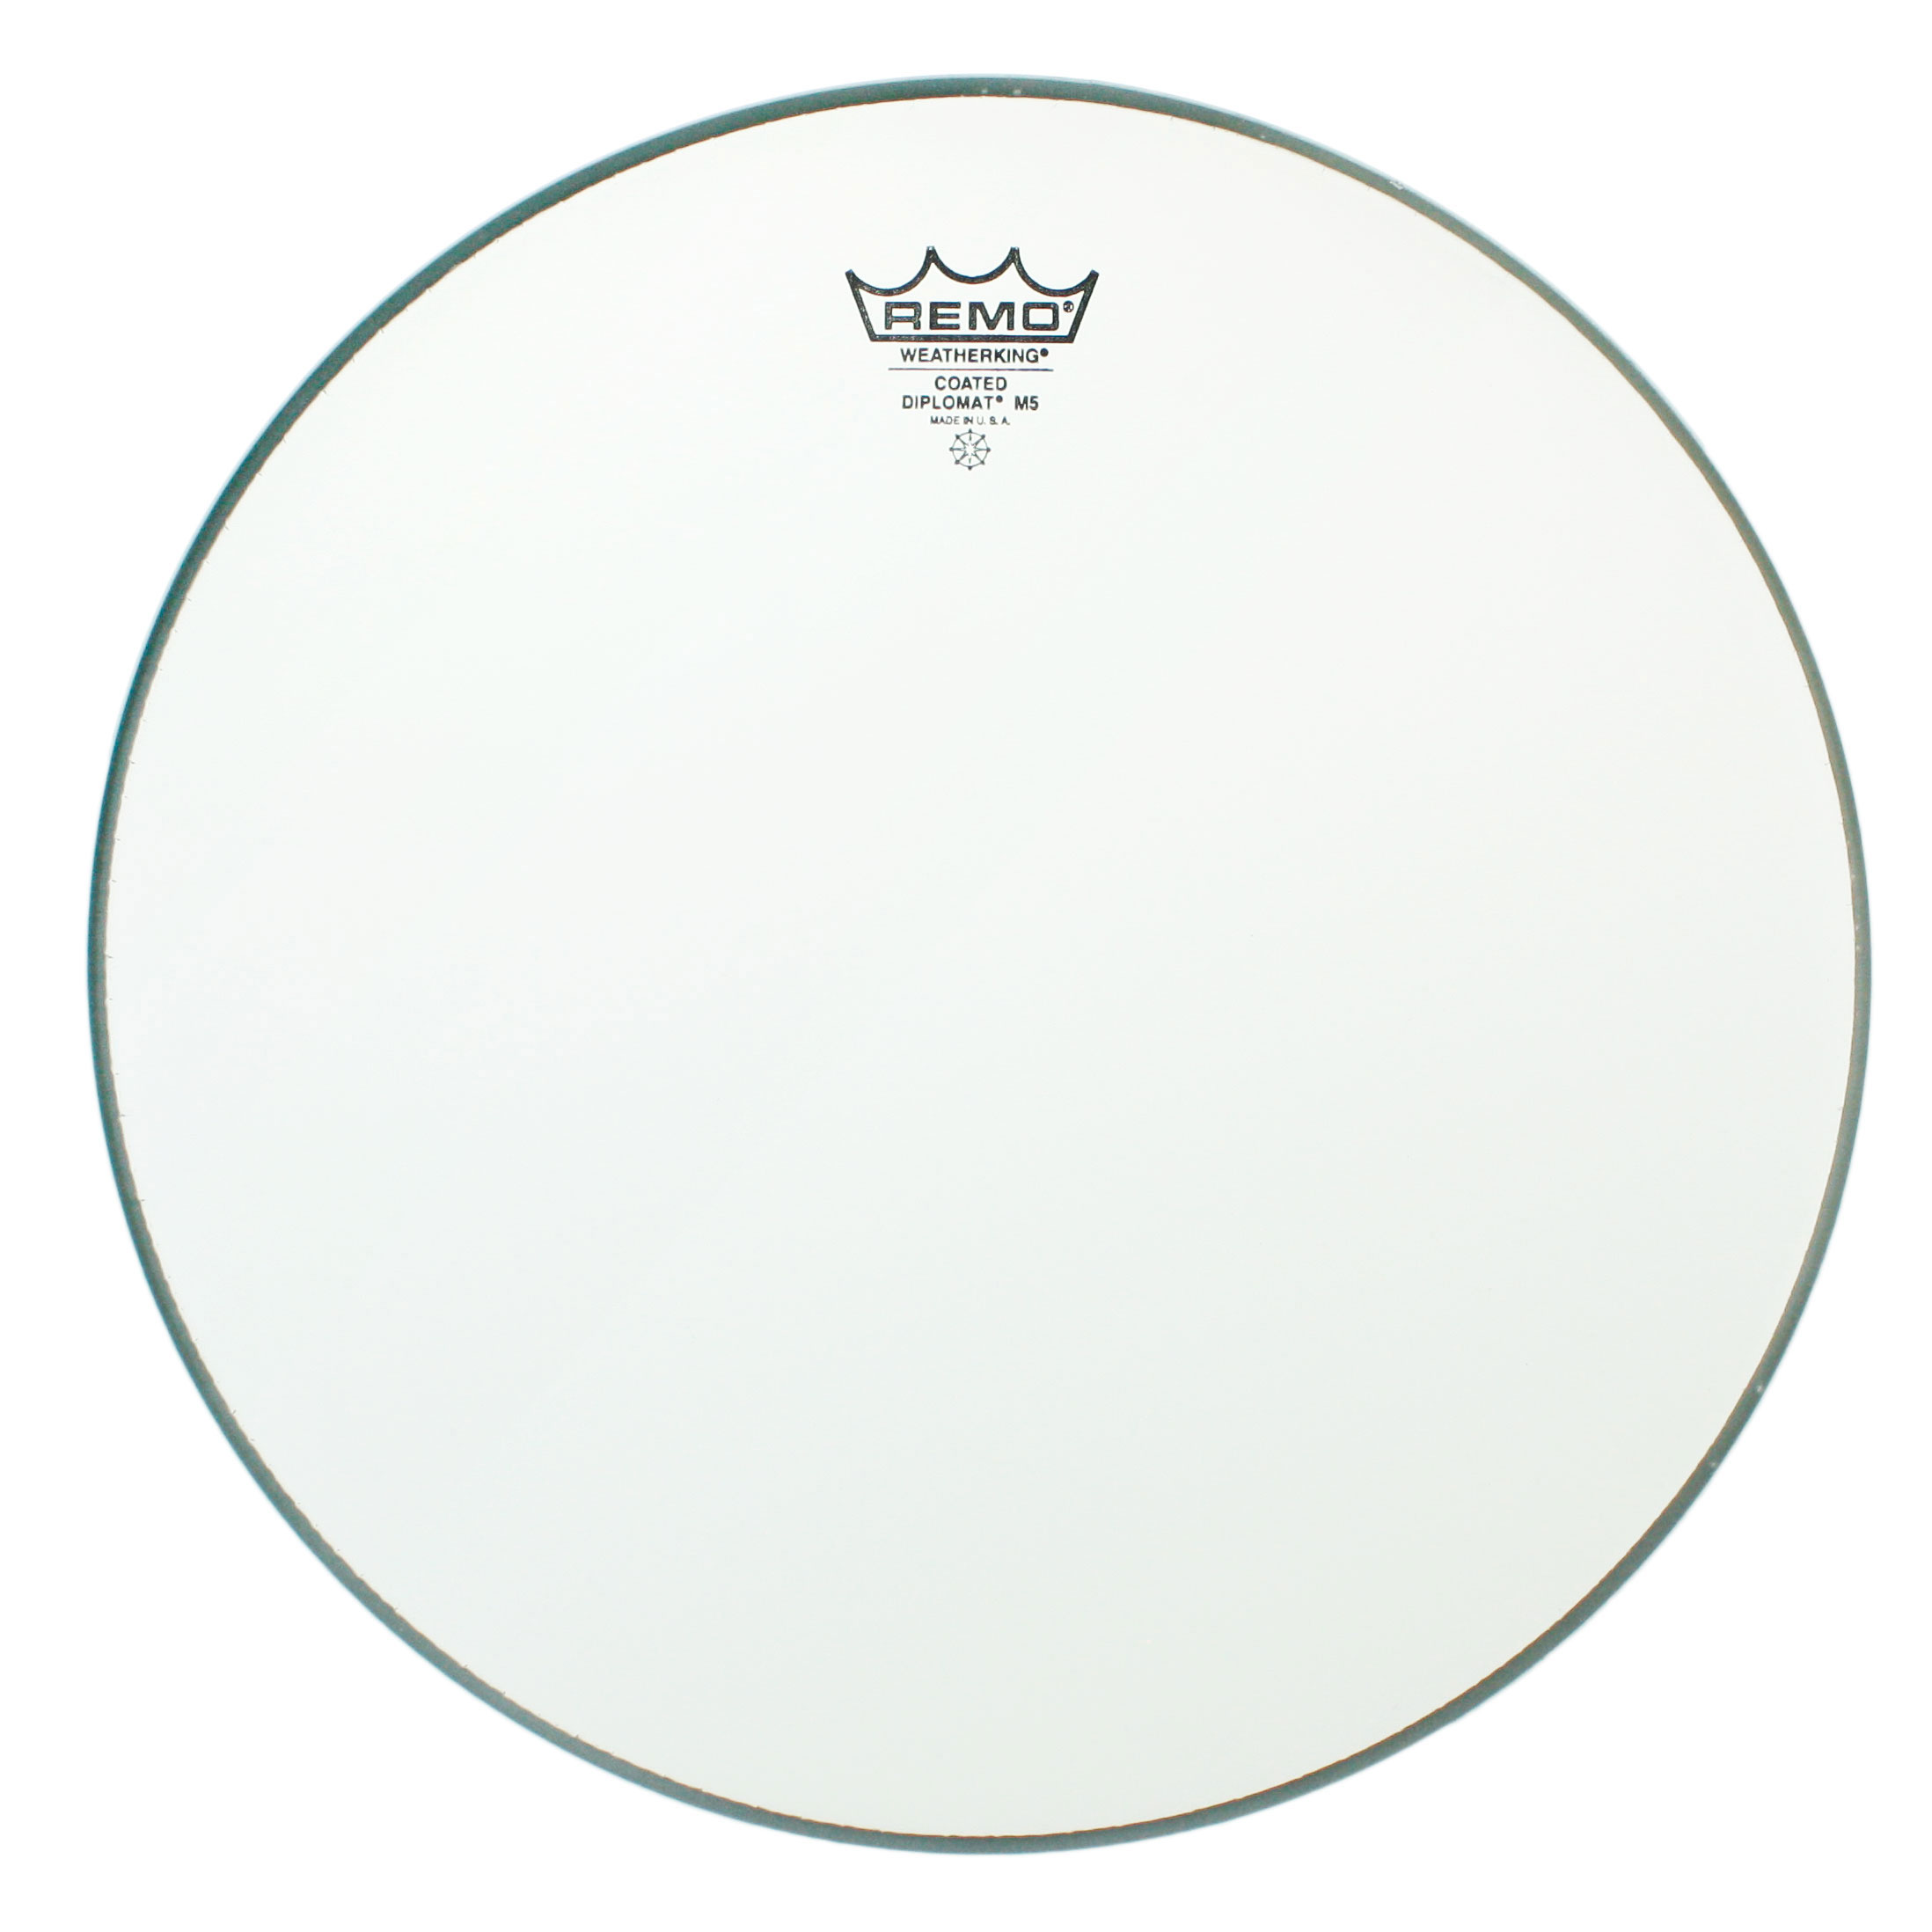 "Remo 12"" Coated Diplomat Head"